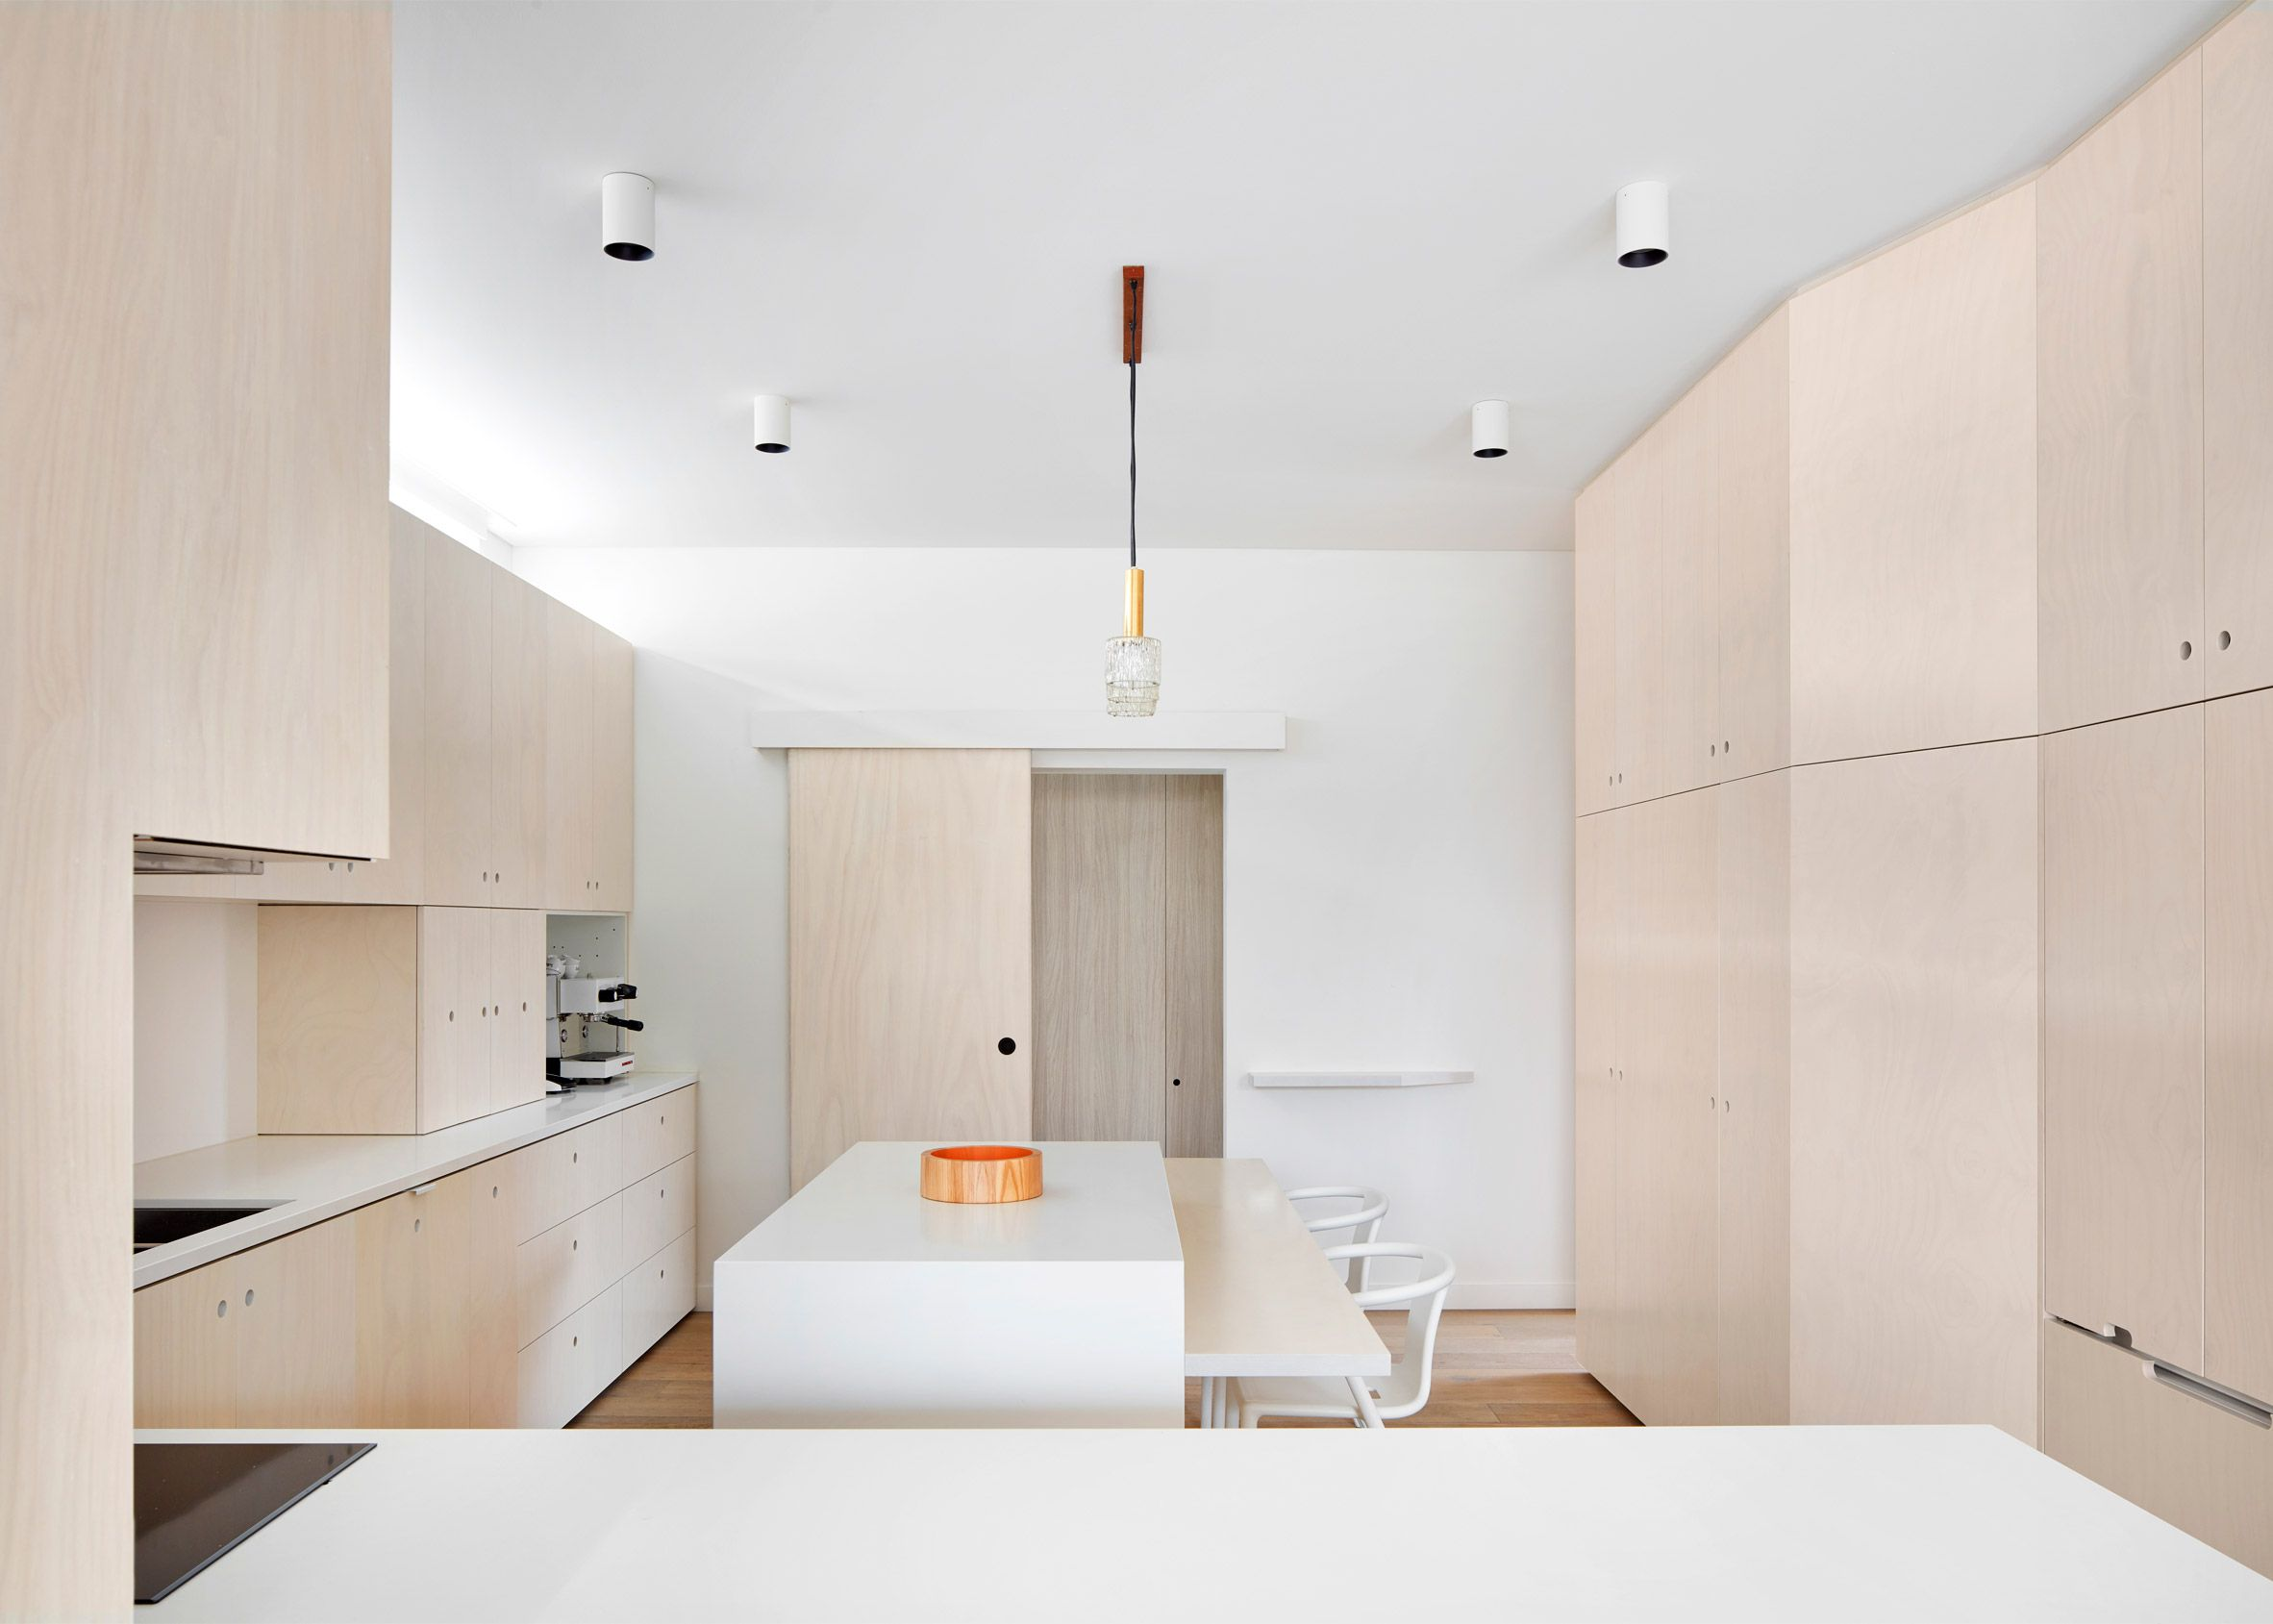 The kitchen of this house features contemporary cabinets fronted by ...